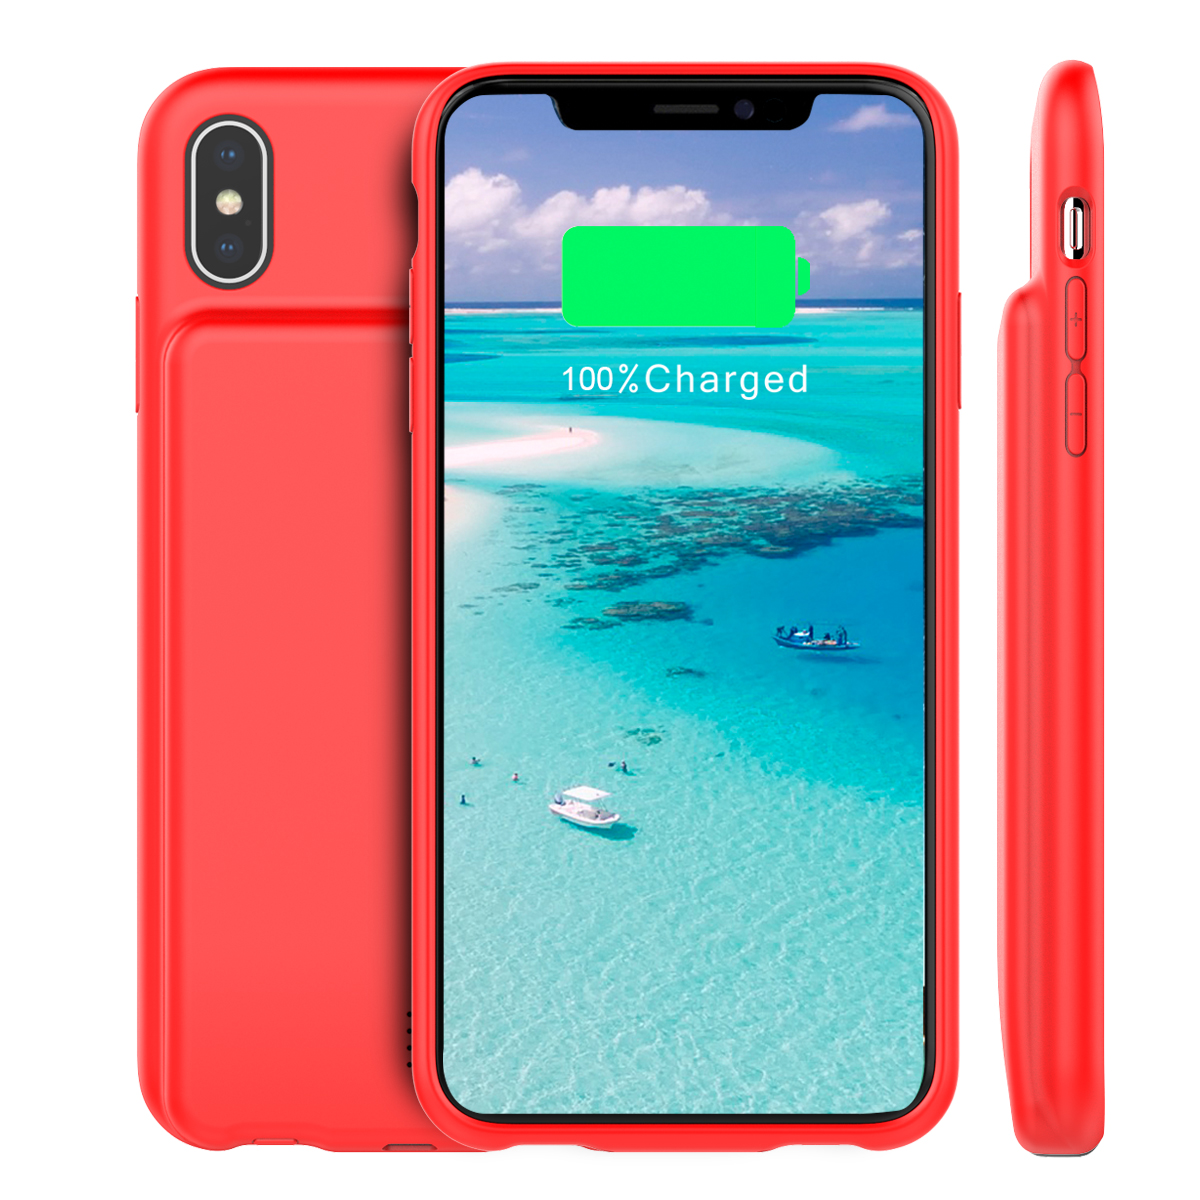 Cellphones & Telecommunications Sporting For Iphone Xs Max Battery Charger Case With Audio 5000mah External Backup Charger Power Bank Protective Phone Shell Cover 6.5 Catalogues Will Be Sent Upon Request Phone Bags & Cases